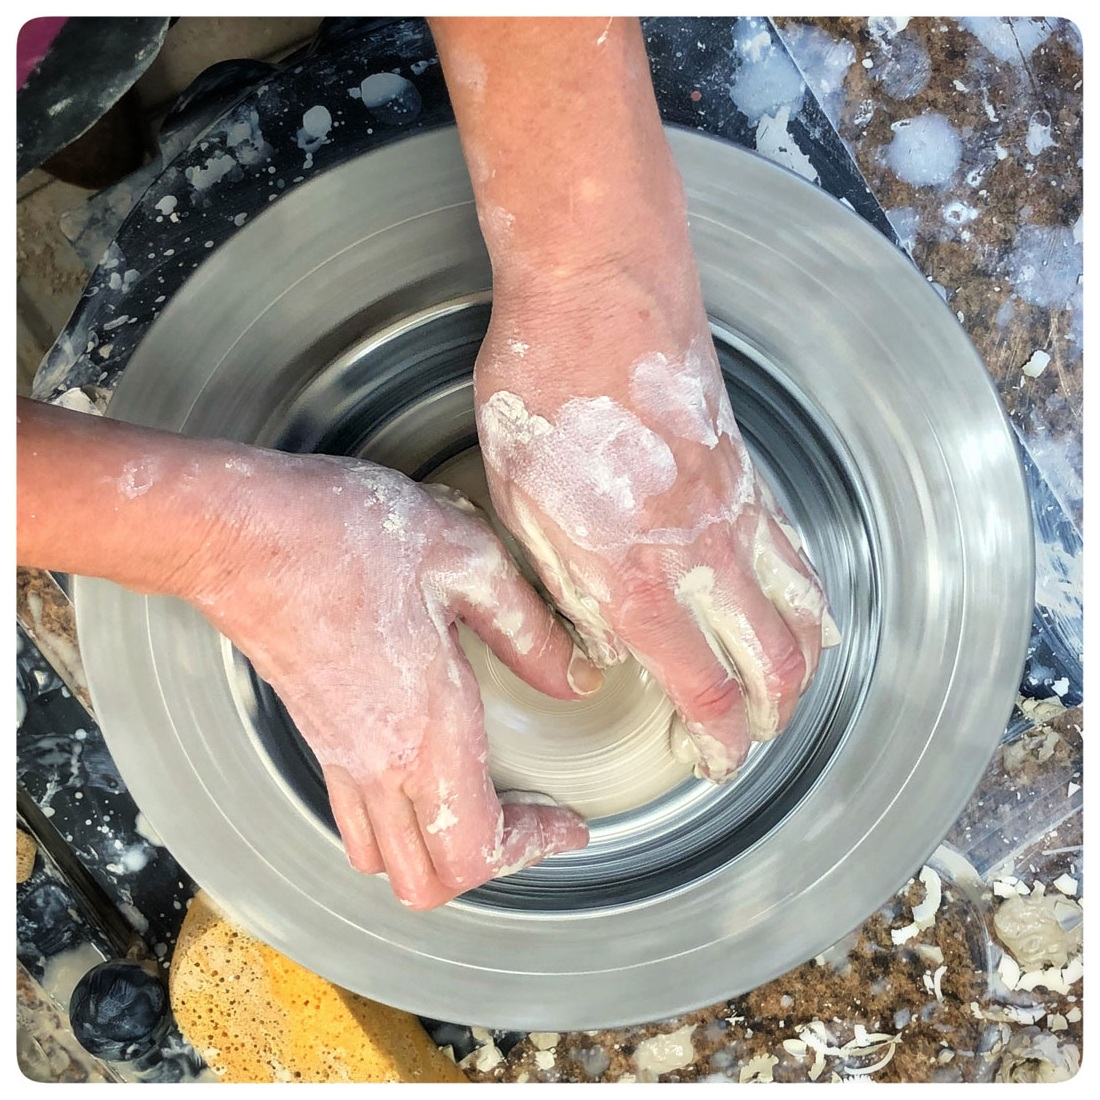 Samantha Henneke Centering the Clay, Bulldog Pottery, Seagrove, North Carolina